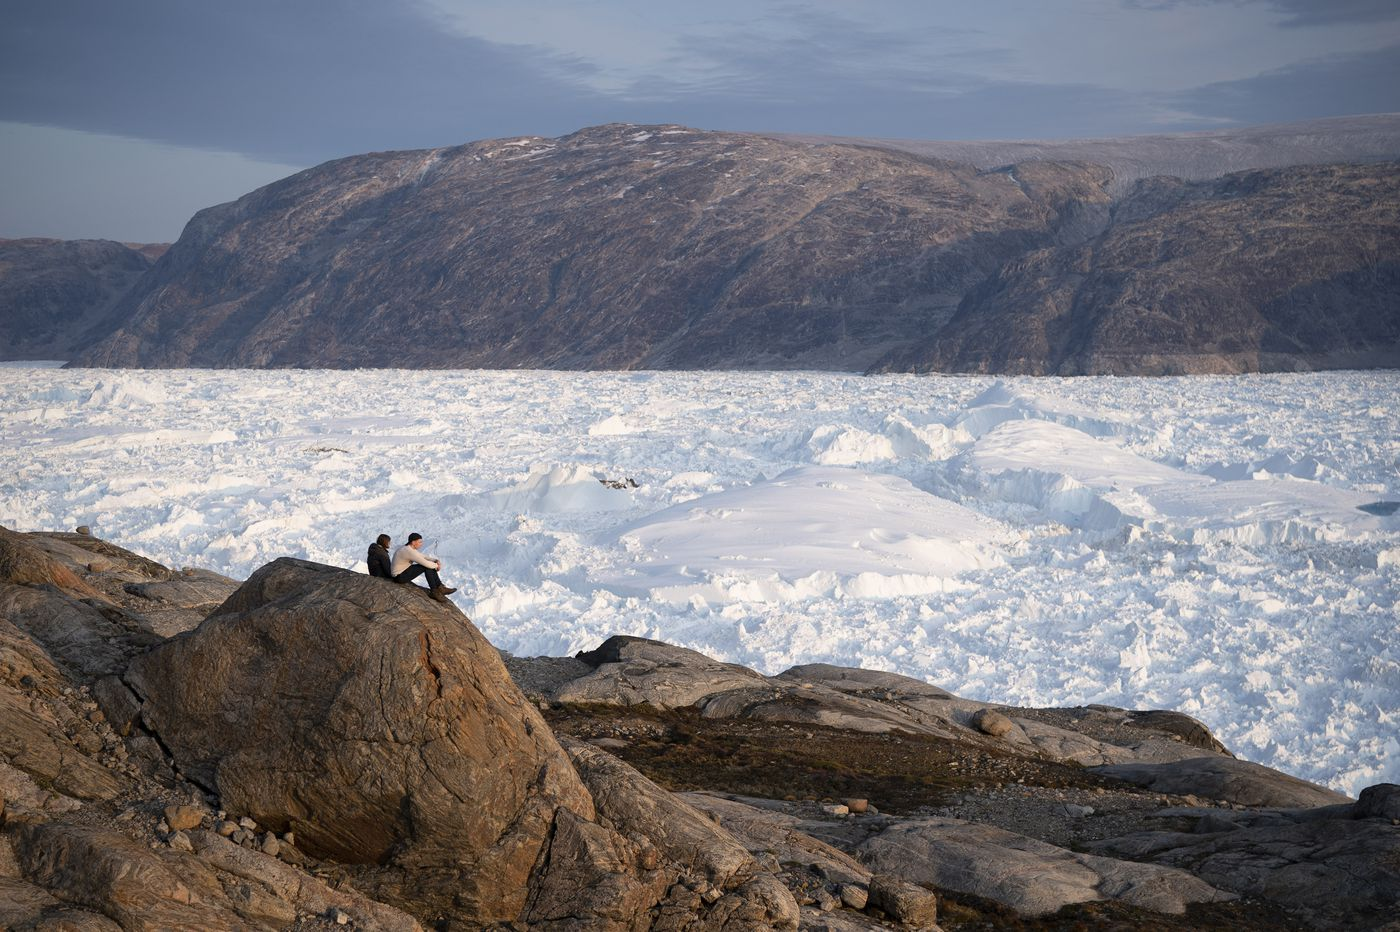 Trump's idea of buying Greenland is far from absurd | Marc Thiessen